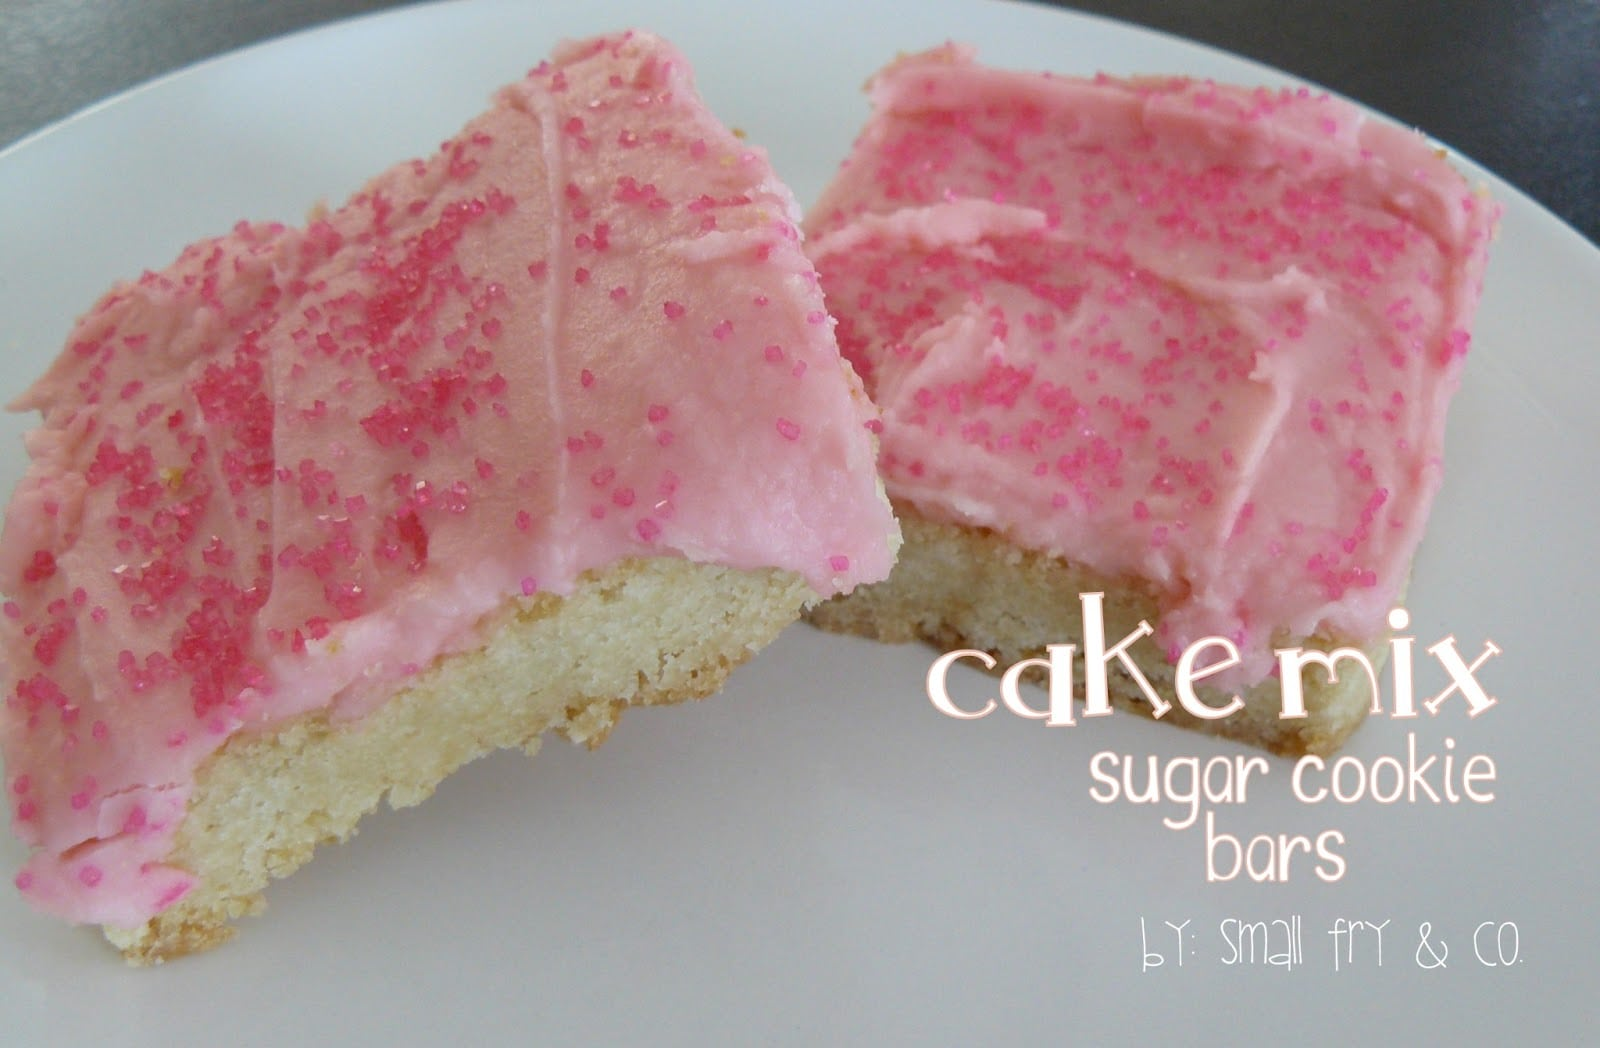 Small Fry & Co    Cake Mix Sugar Cookie Bars